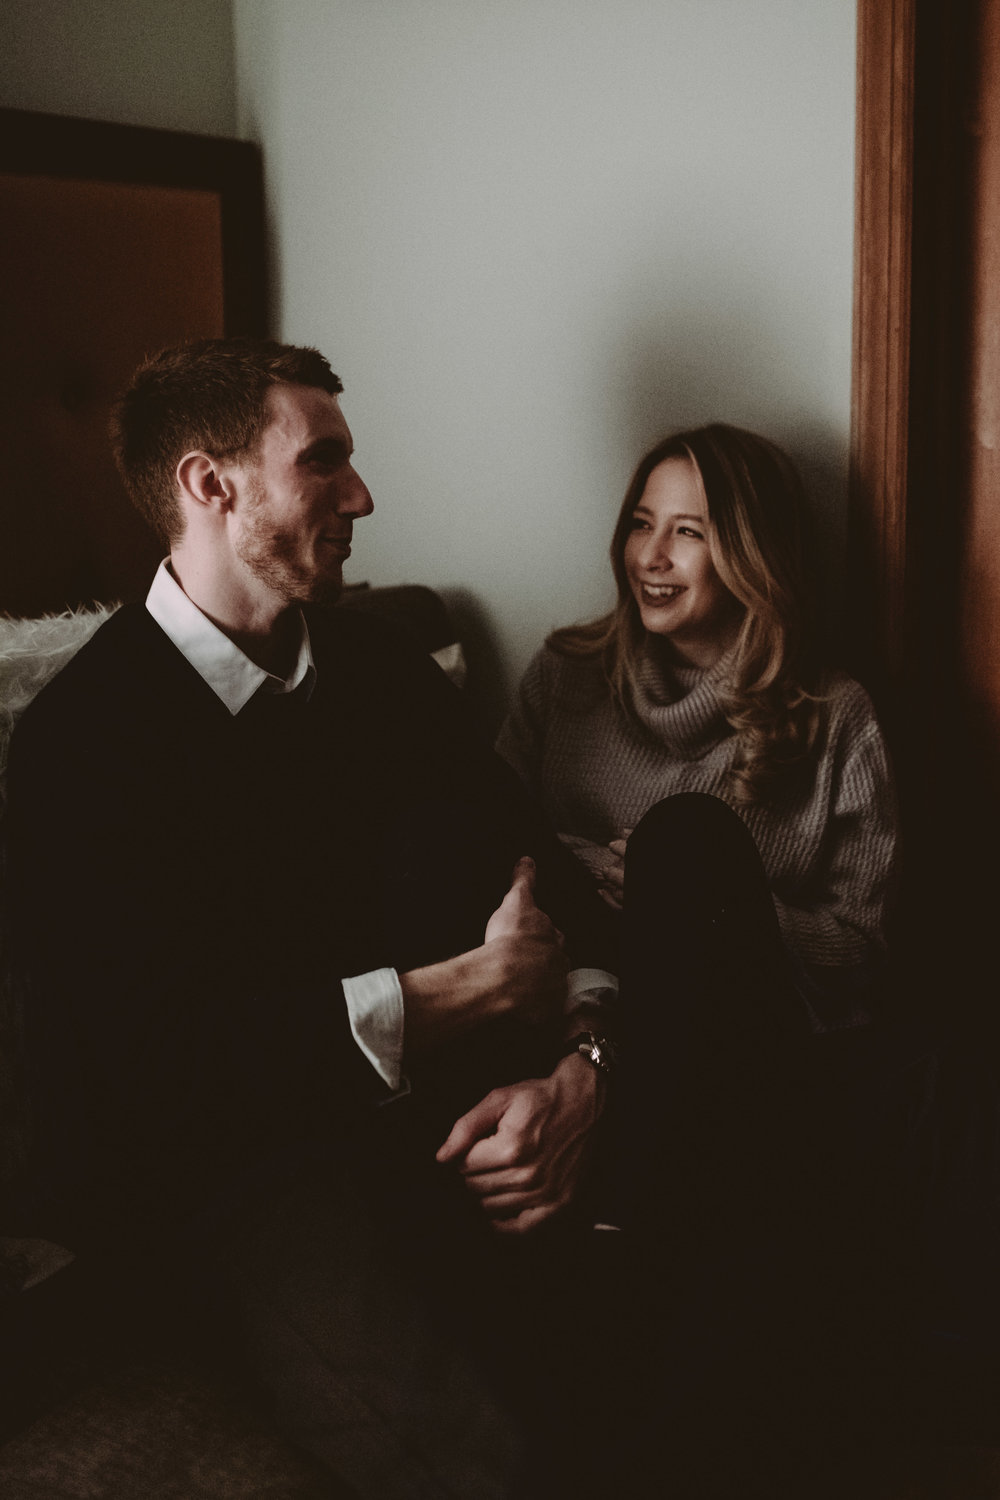 Wilde-Scout-Photo-Co-Upper-East-Side-Engagement-Photographer-NYC-16